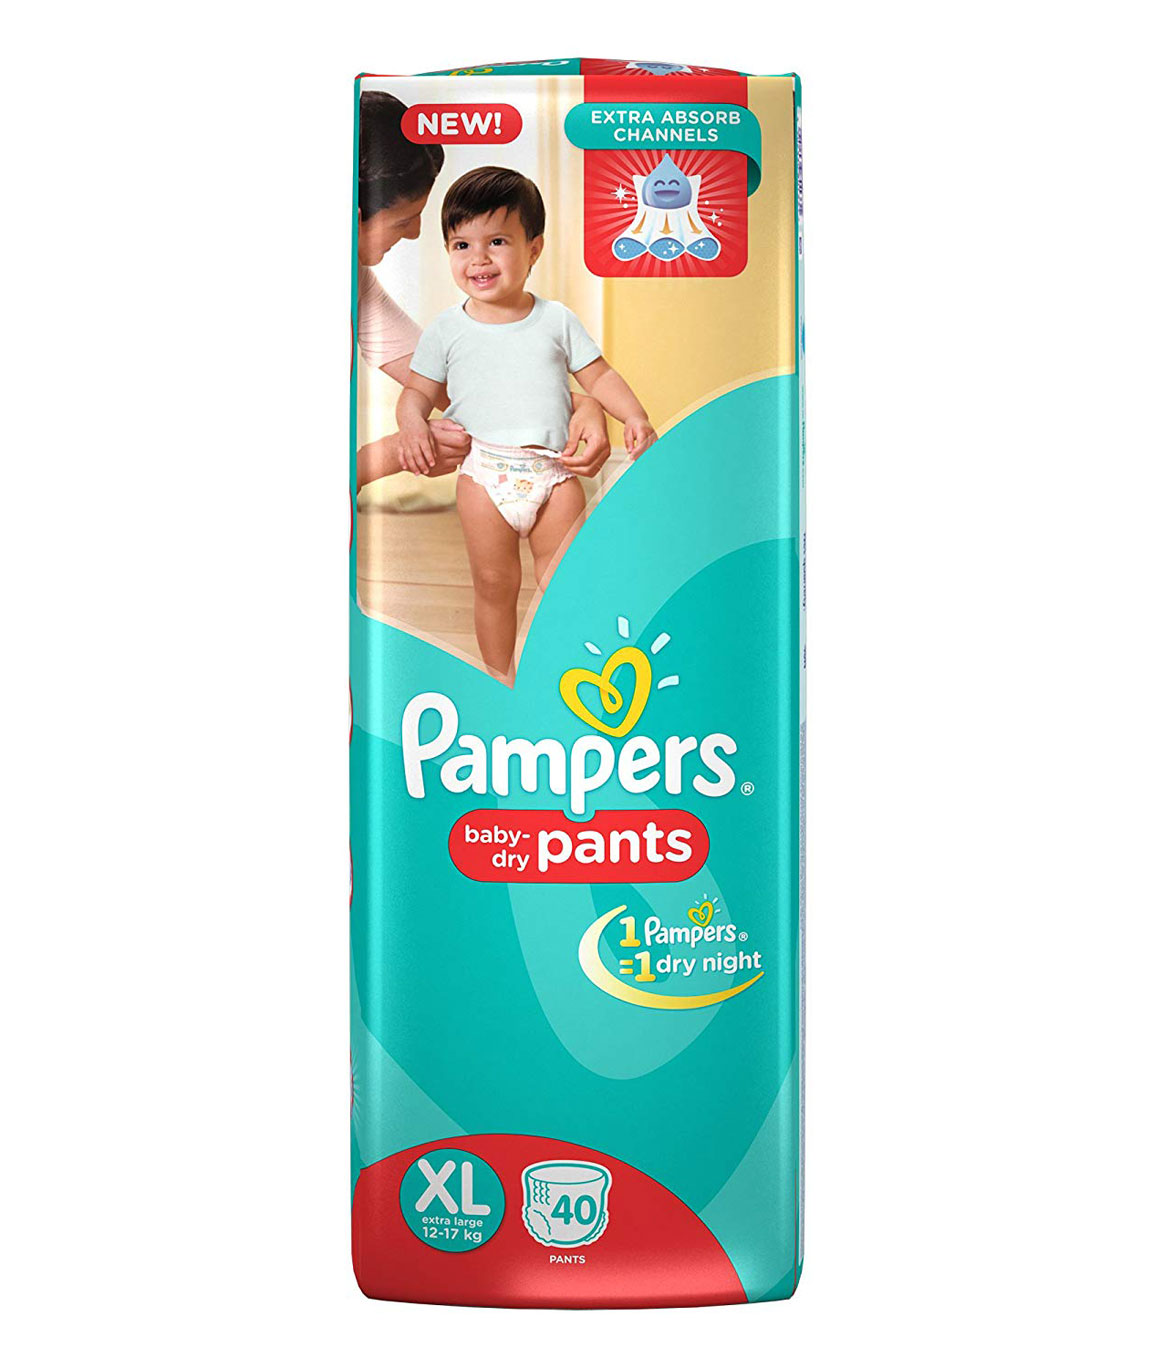 Pampers Extra Large Size Diaper Pants (40 Count)